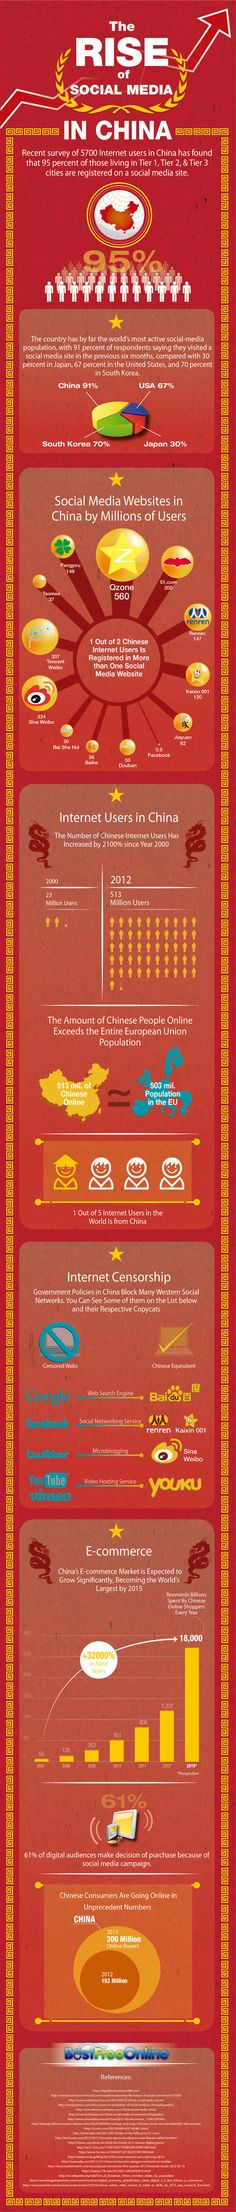 Looking at Chinese social media space, we see the fast growing of Weibo (led by Sina and Tencent), the missing of Facebook and rising of social ecommerce. The following infographic produced by Chee Seng of bestfreeonline.net gives a good overview of the social media in China.